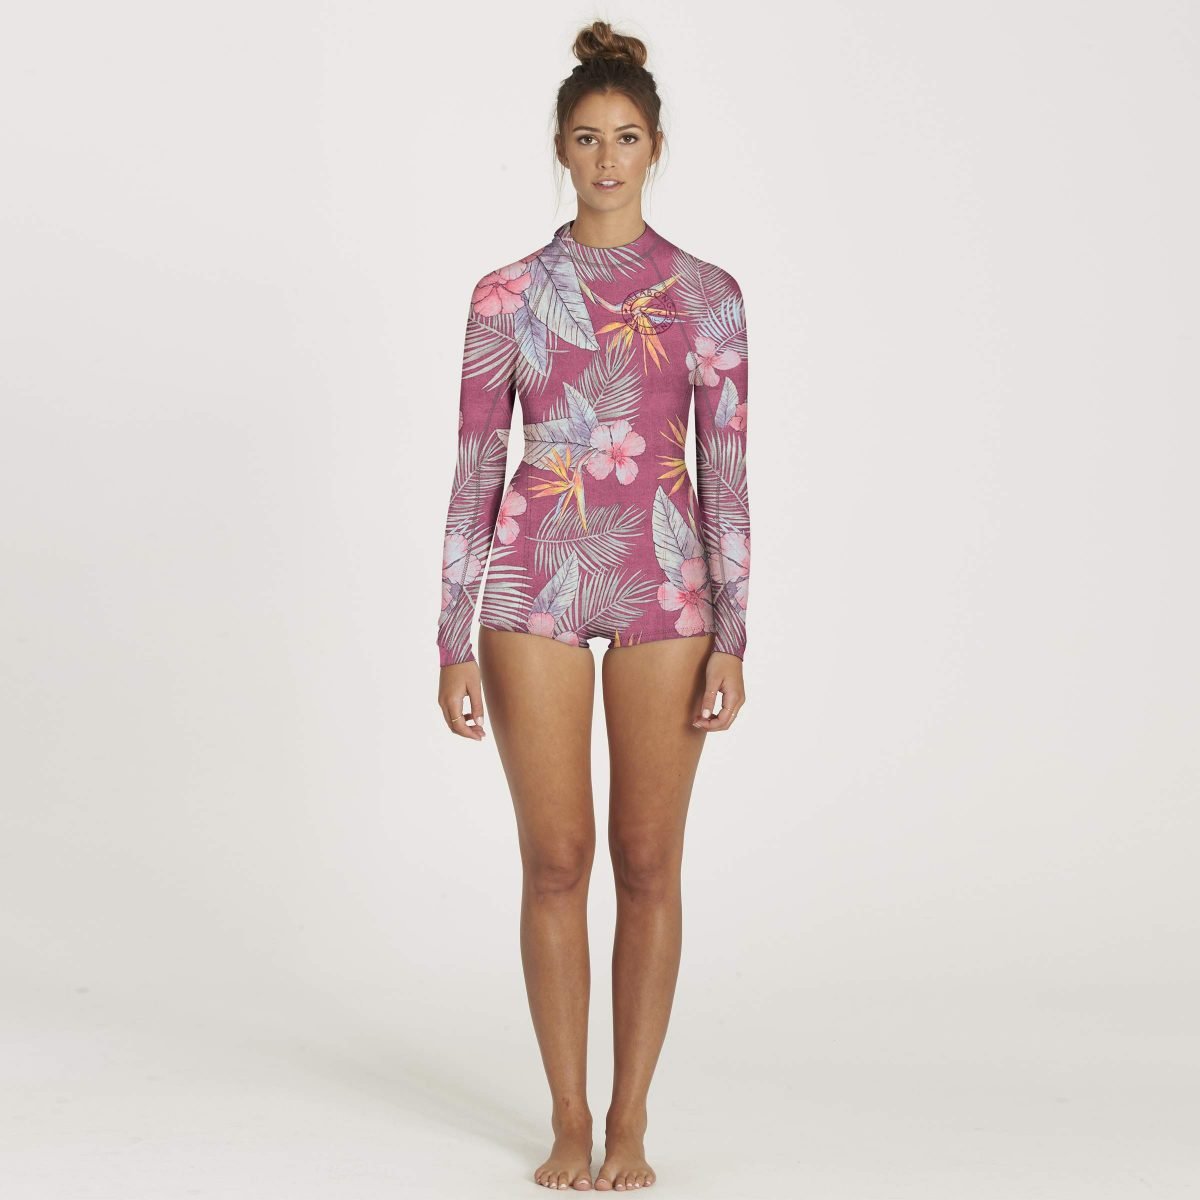 ong-sleeve-surf-capsule billabong